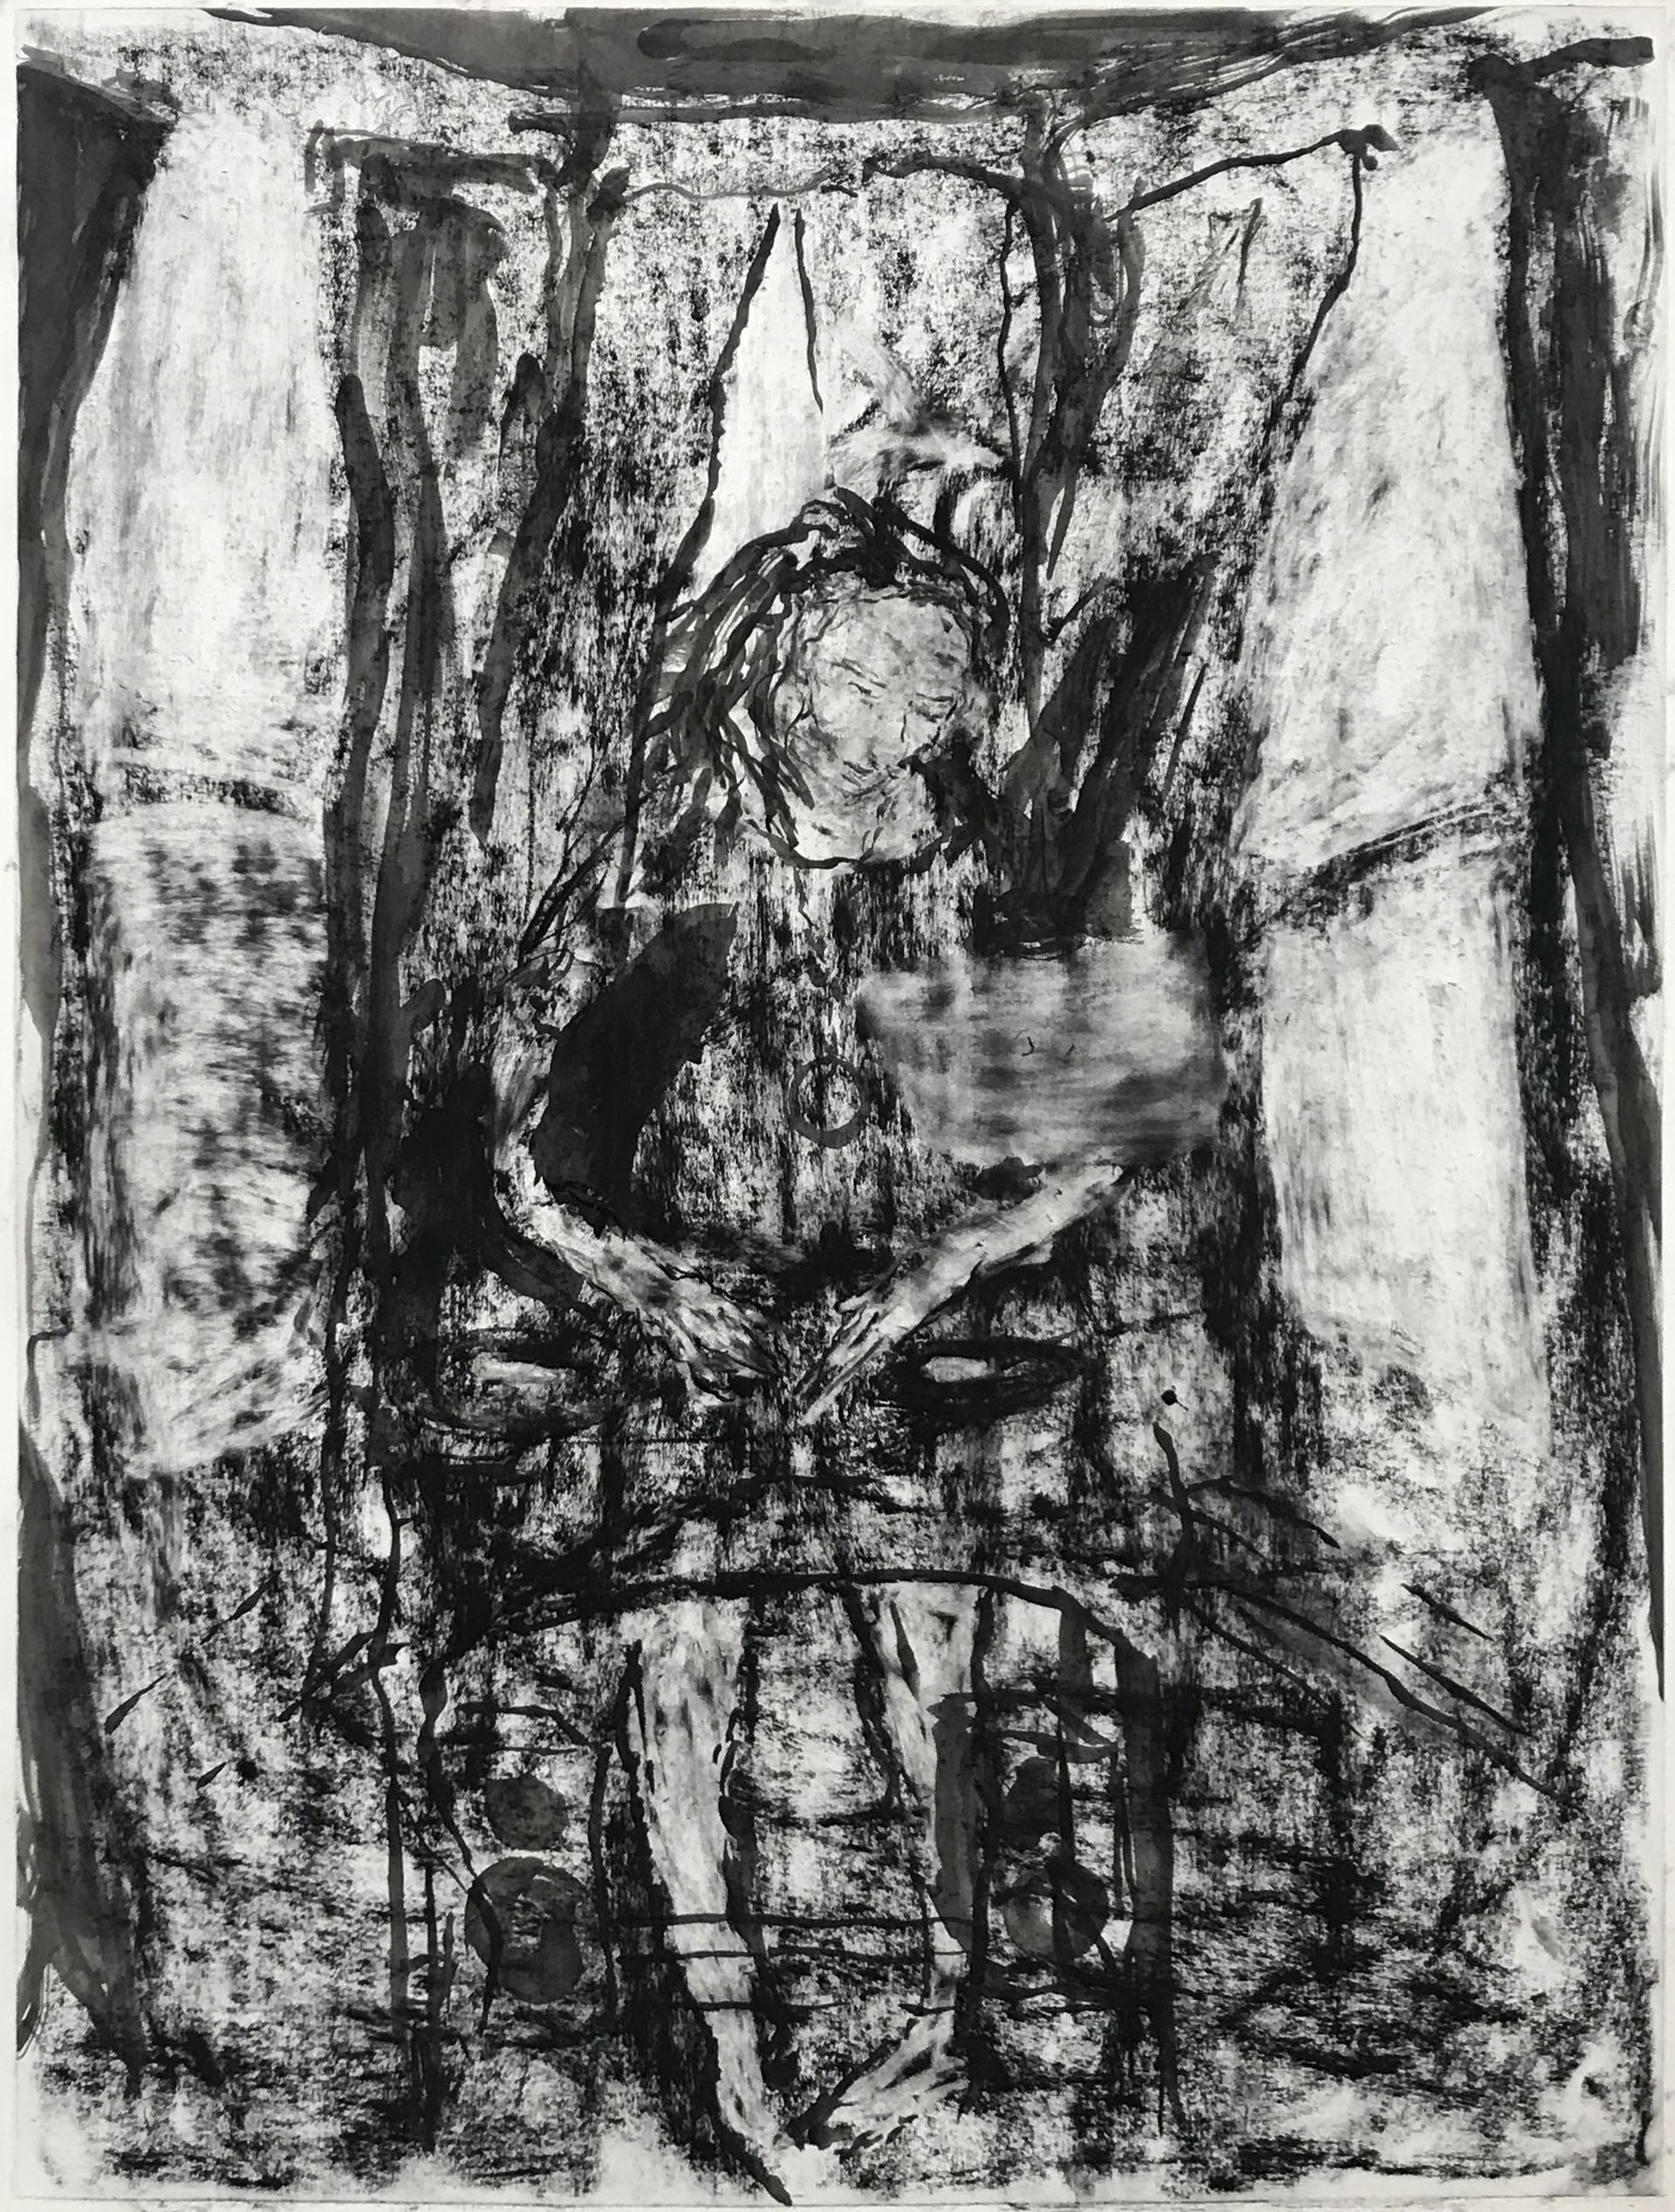 a large charcoal drawing a of a person in a dress DJing in a living room